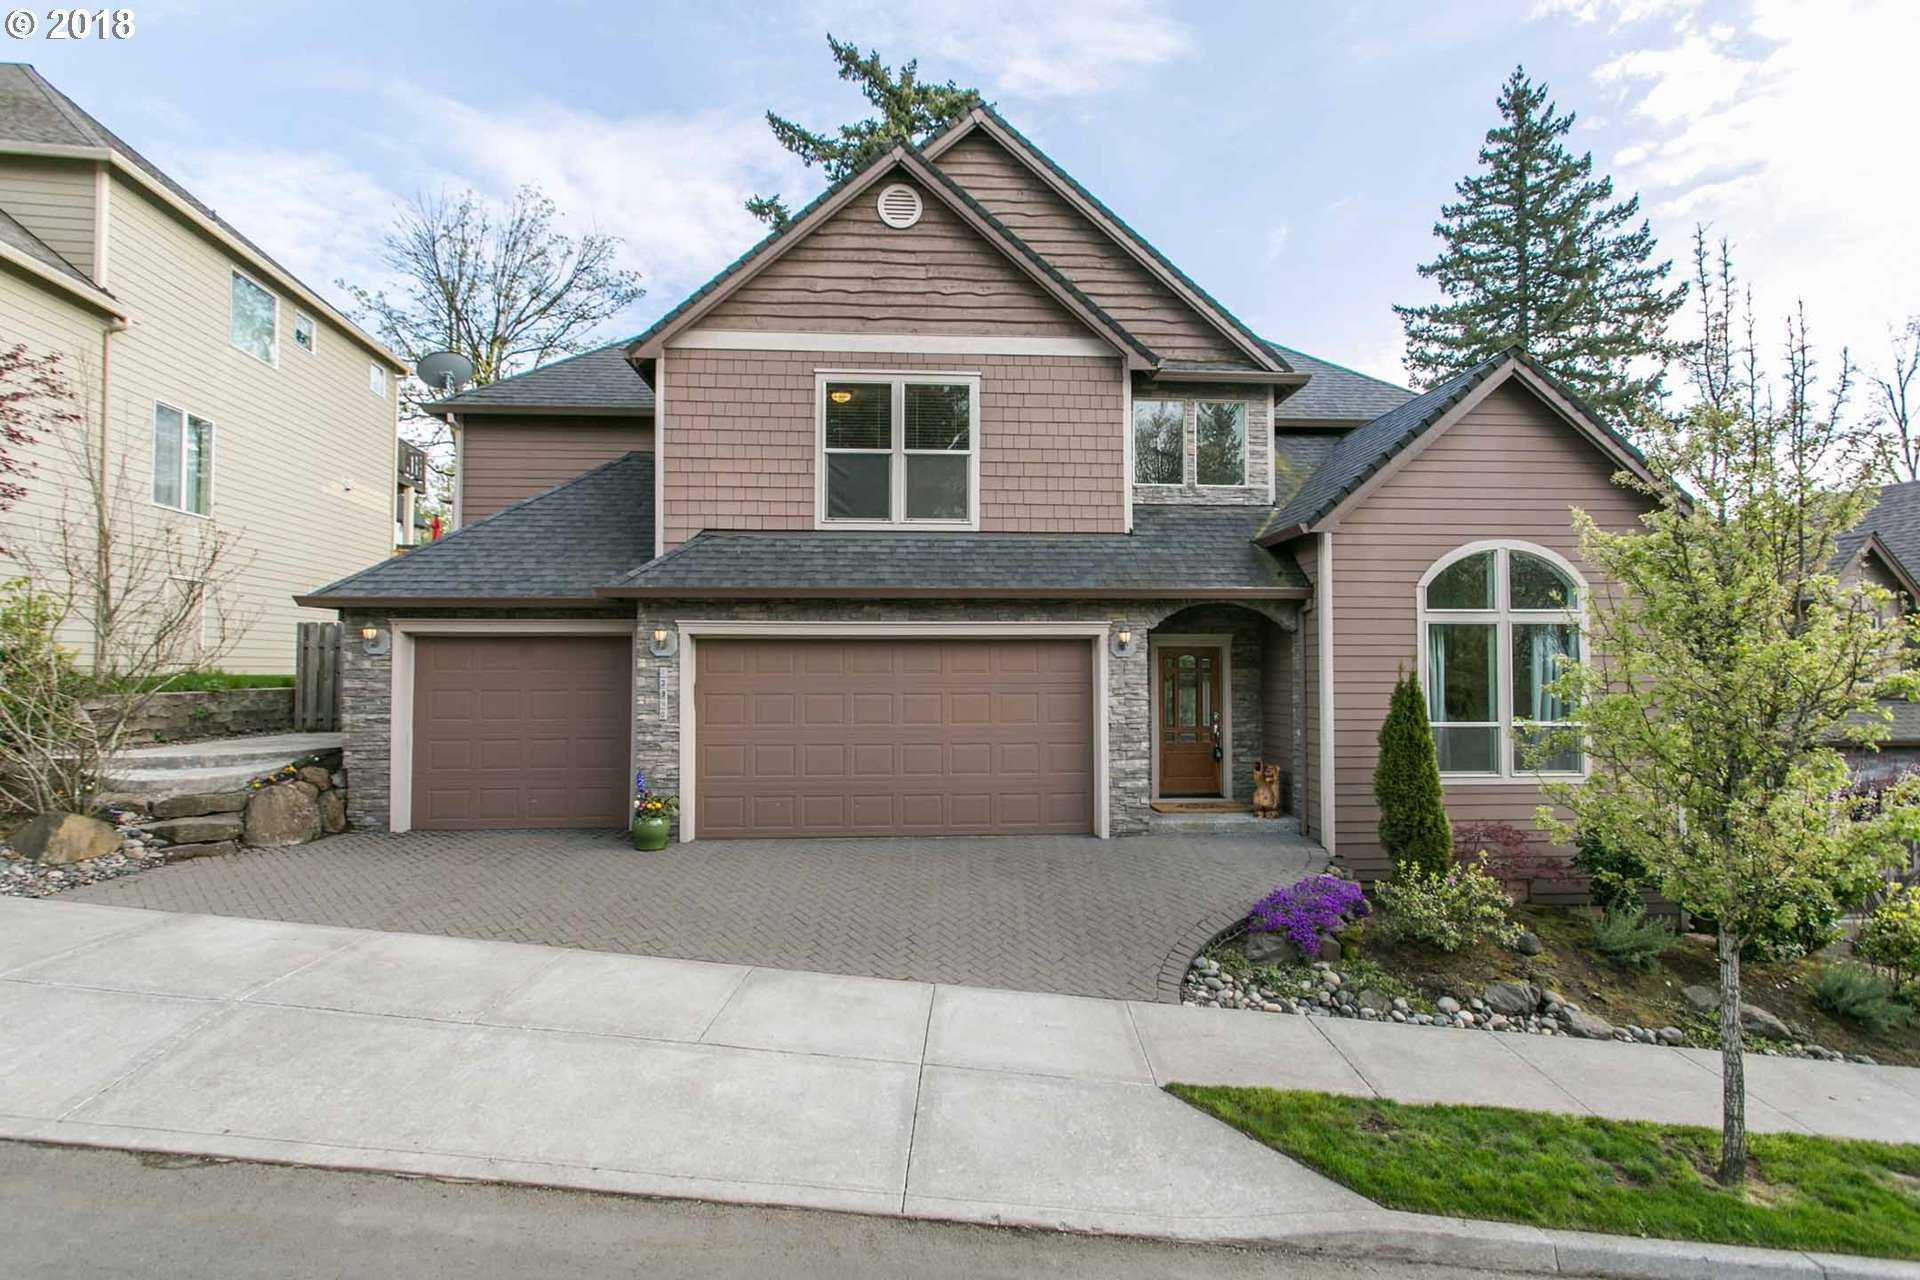 $500,000 - 4Br/3Ba -  for Sale in Portland